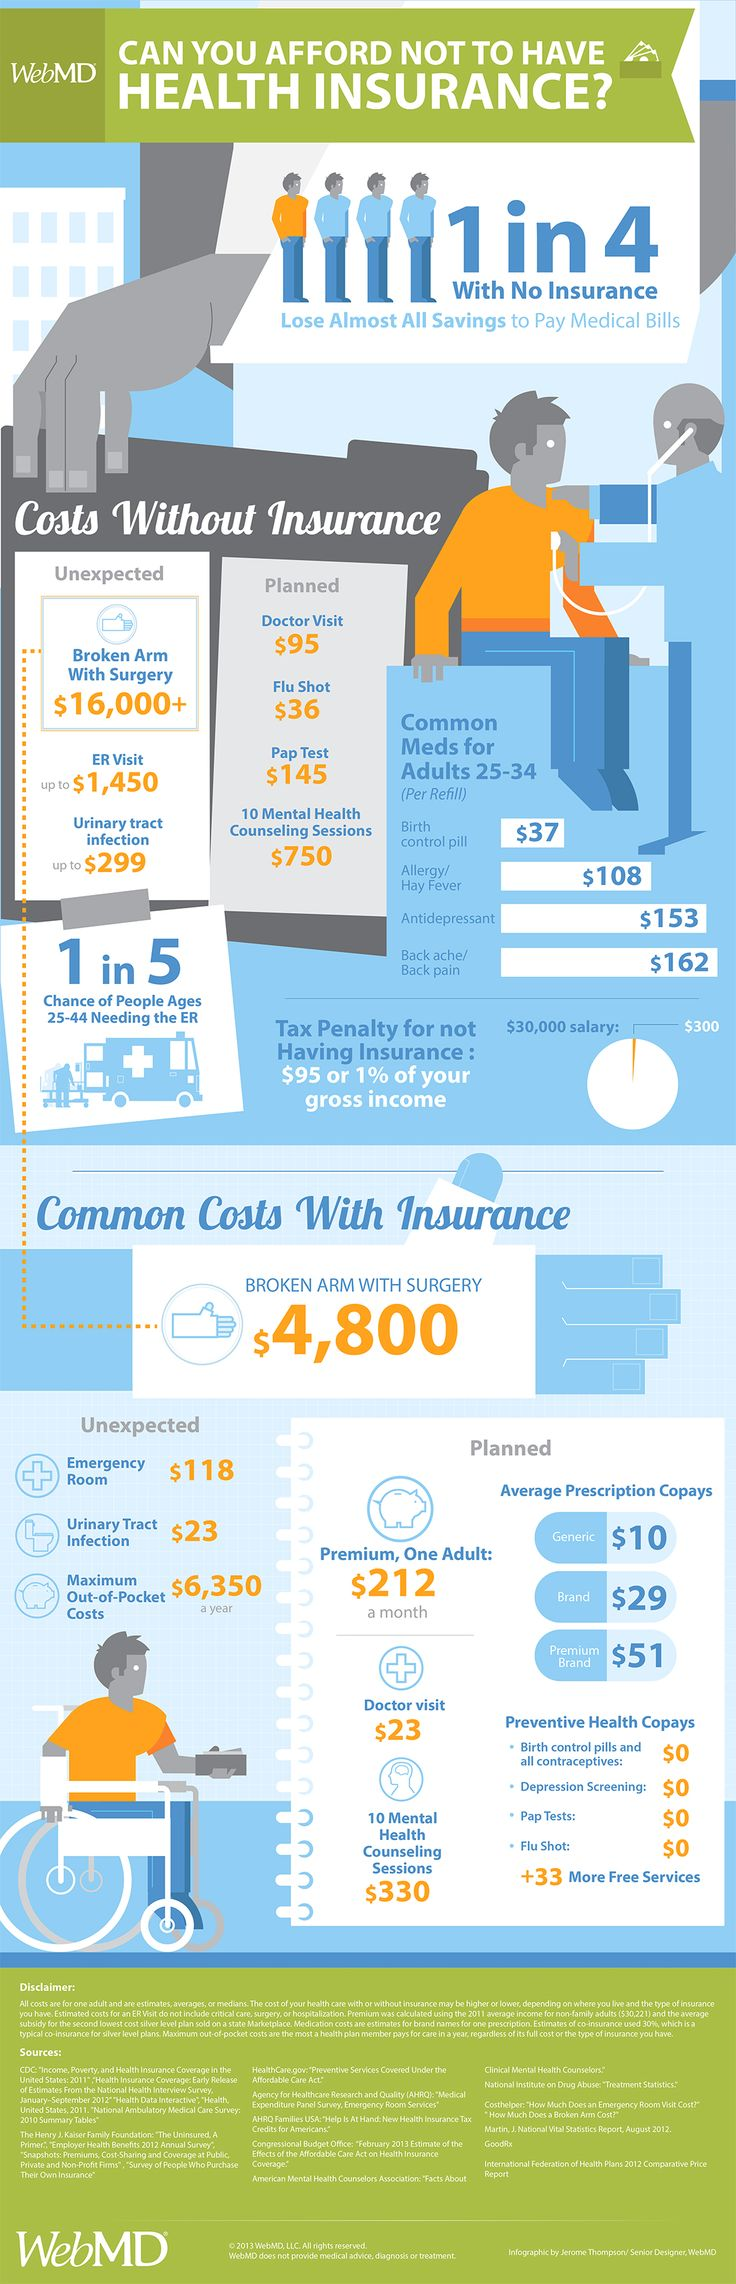 Health Insurance Quotes For Individuals Best 25 Health Insurance Plans Ideas On Pinterest  Family Health